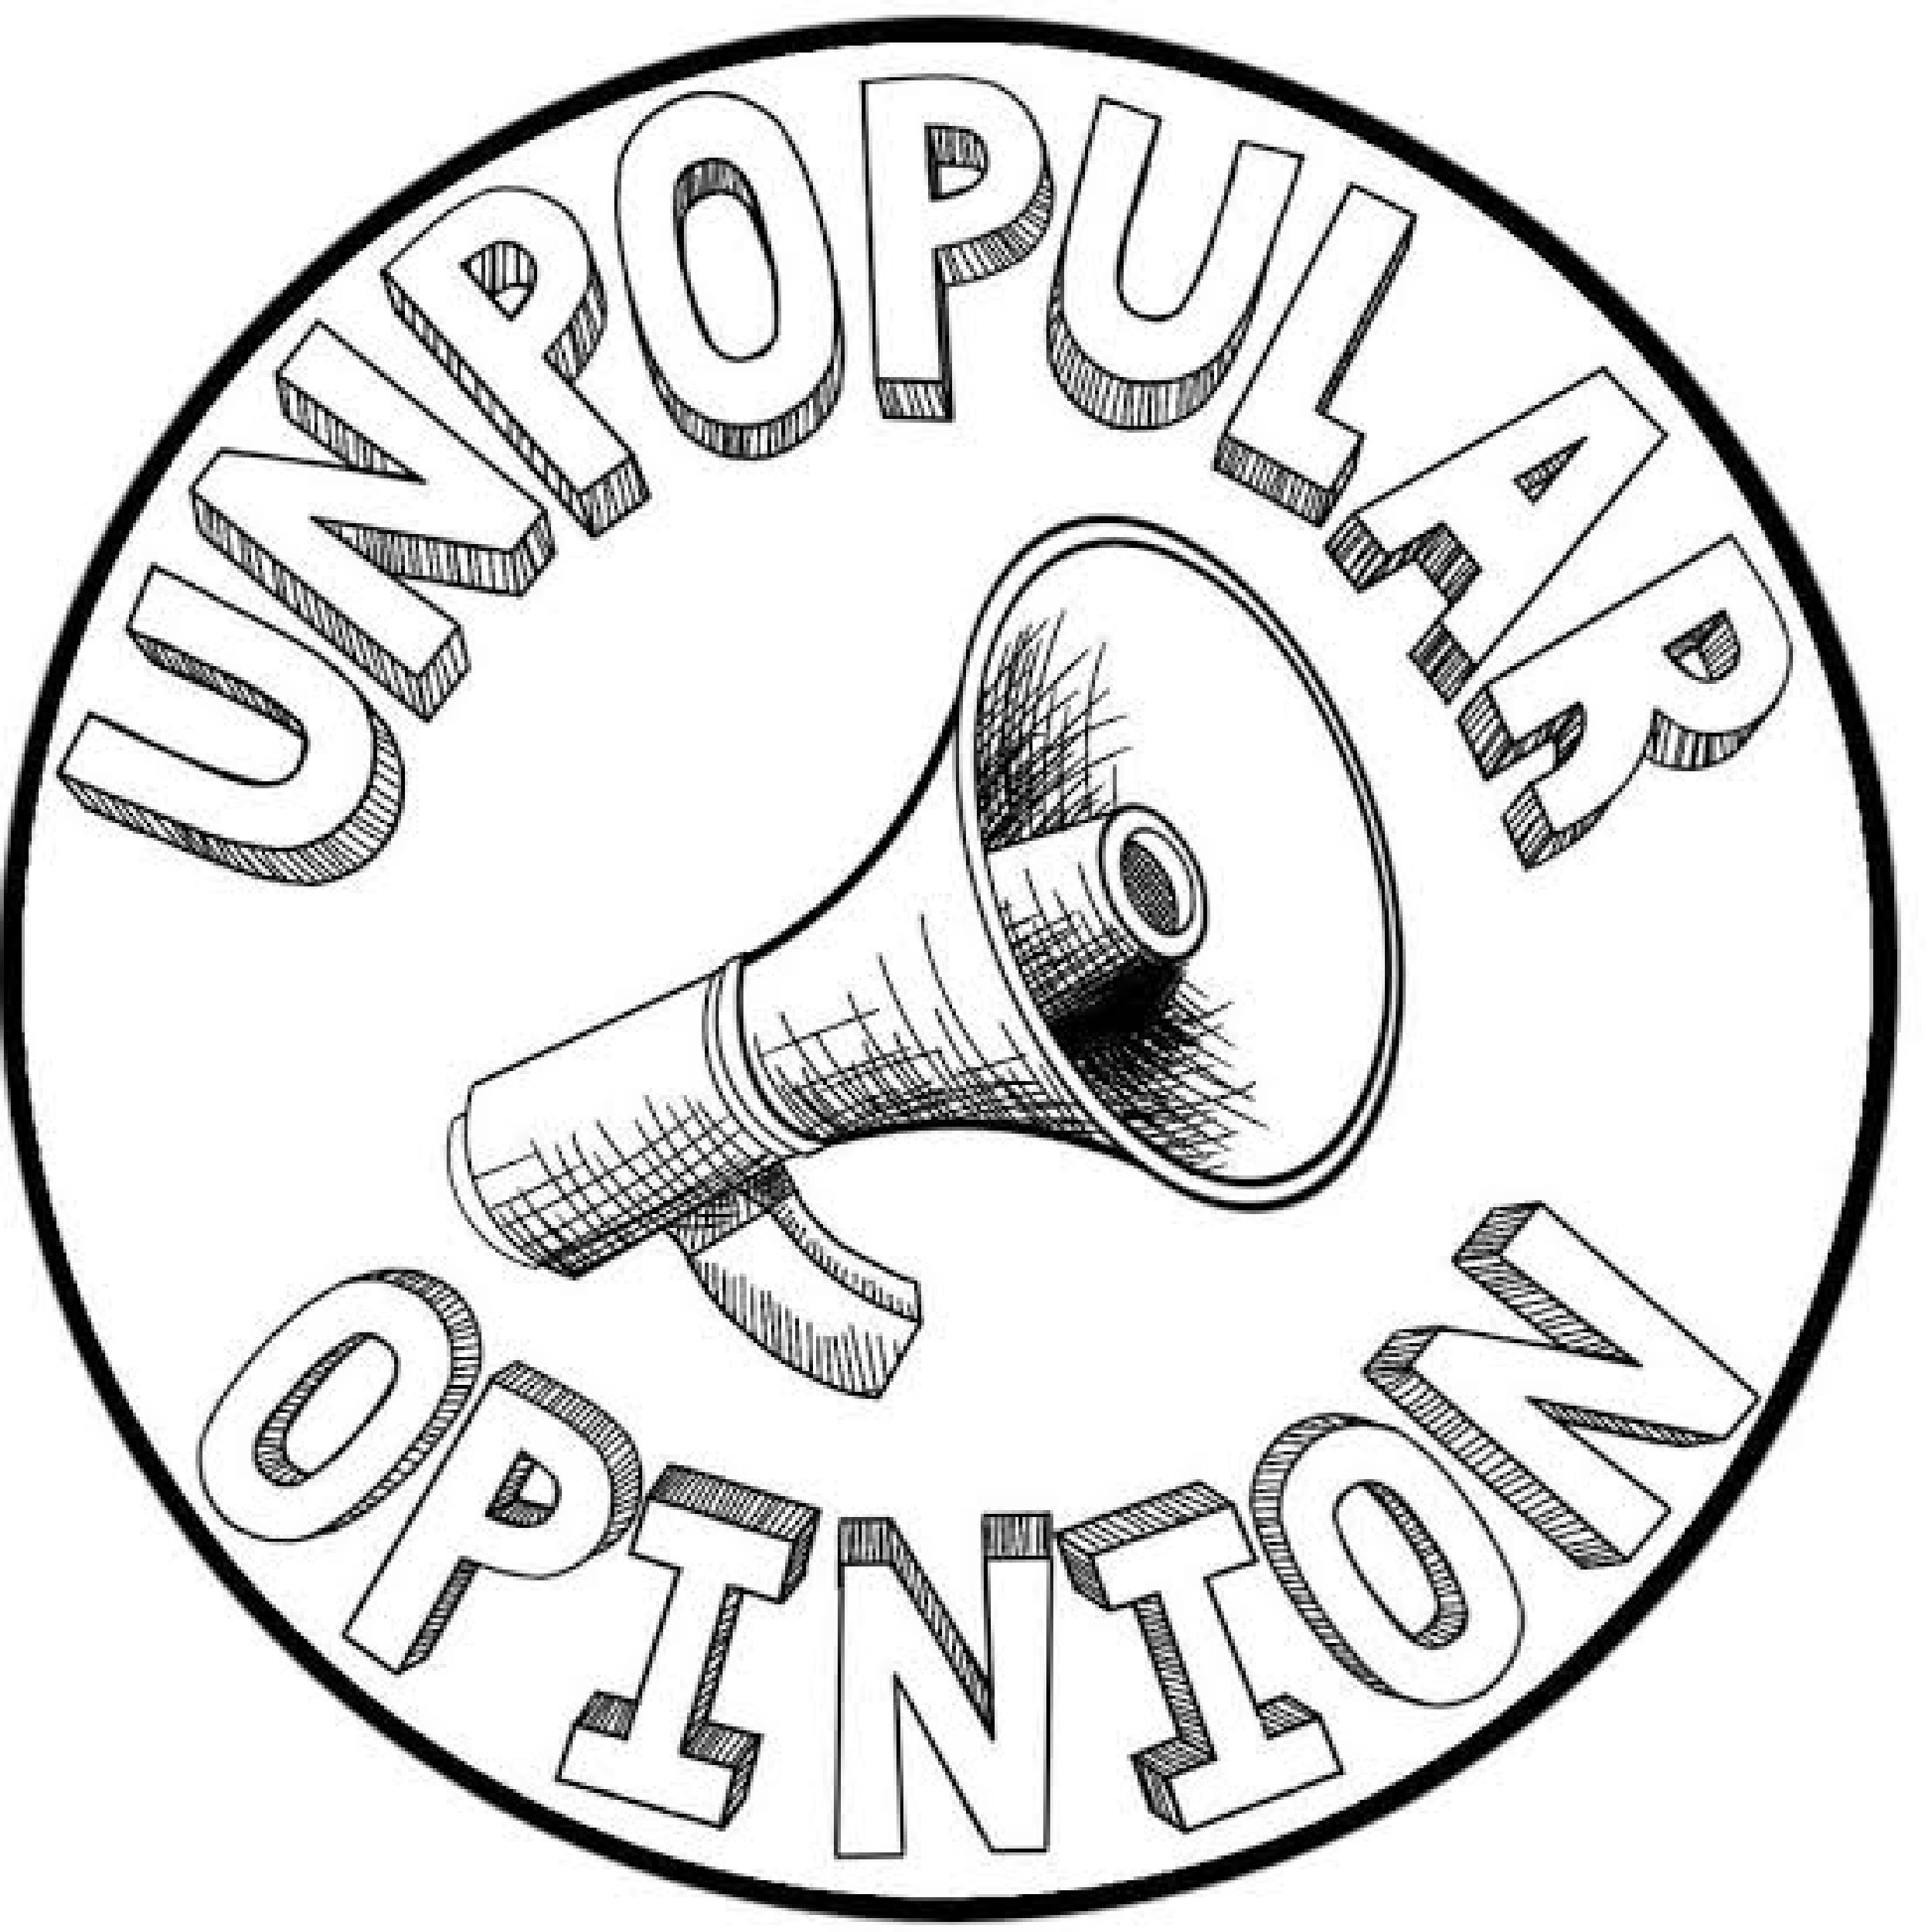 Your unpopular opinions?